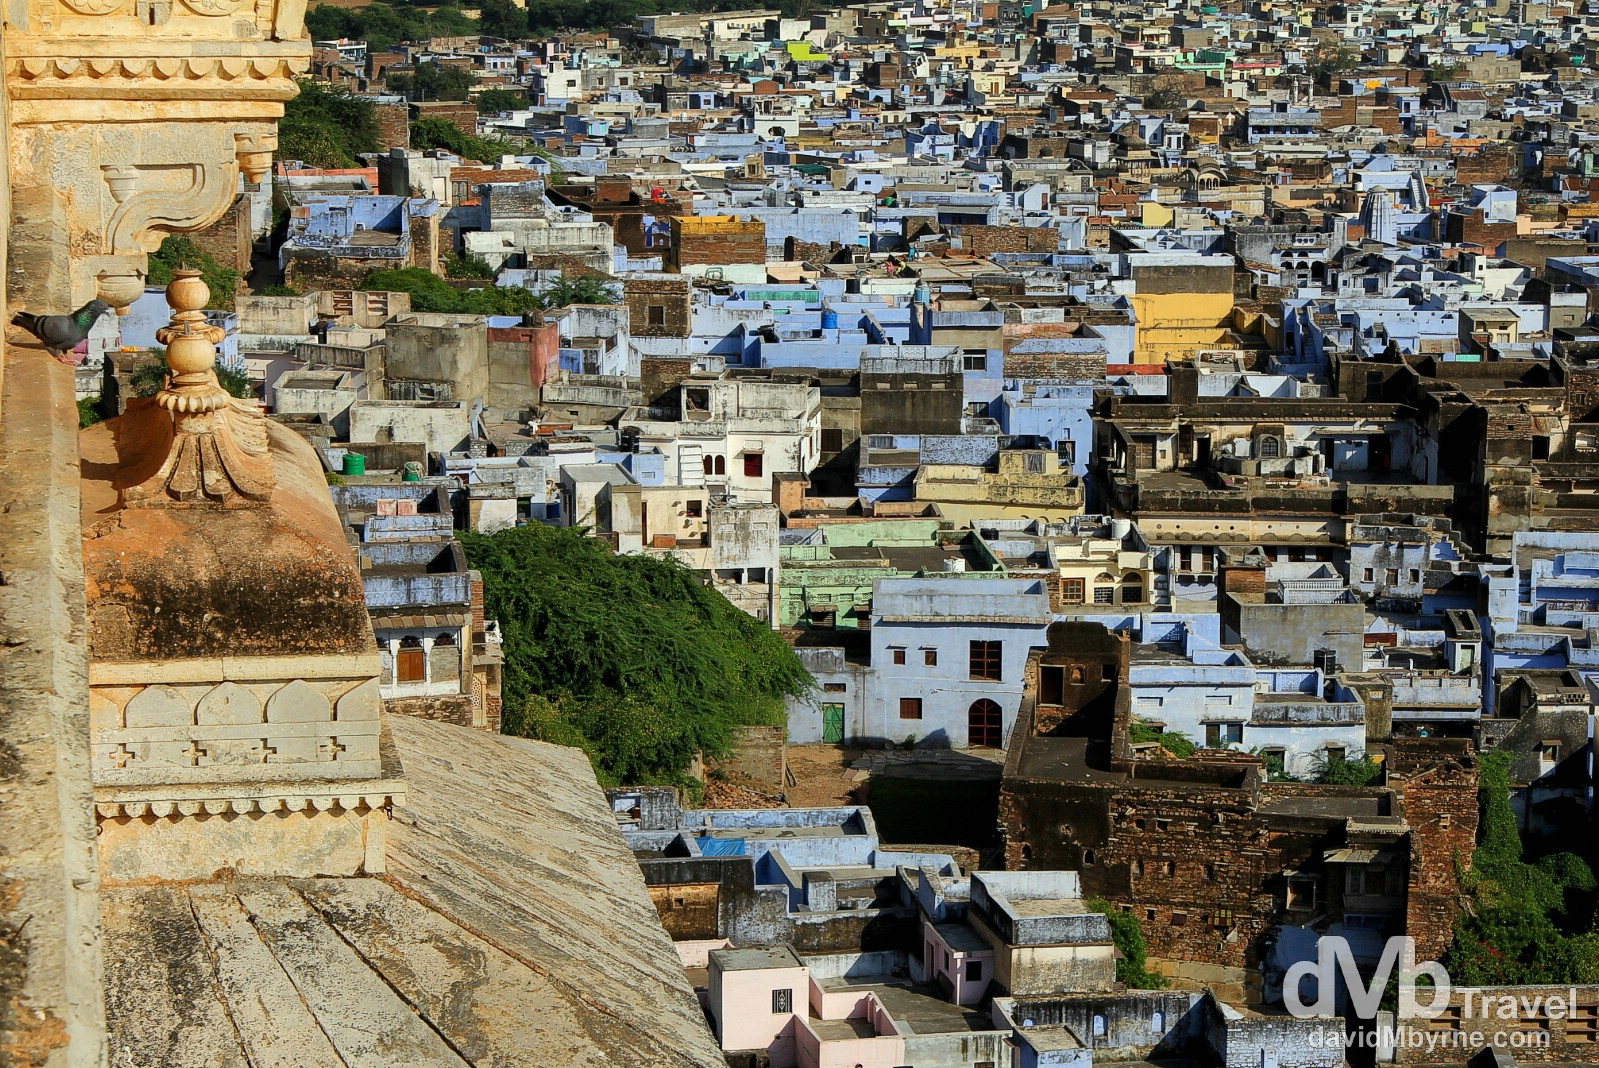 Bundi as seen from Bundi Palace, Rajasthan, India. October 1st 2012.